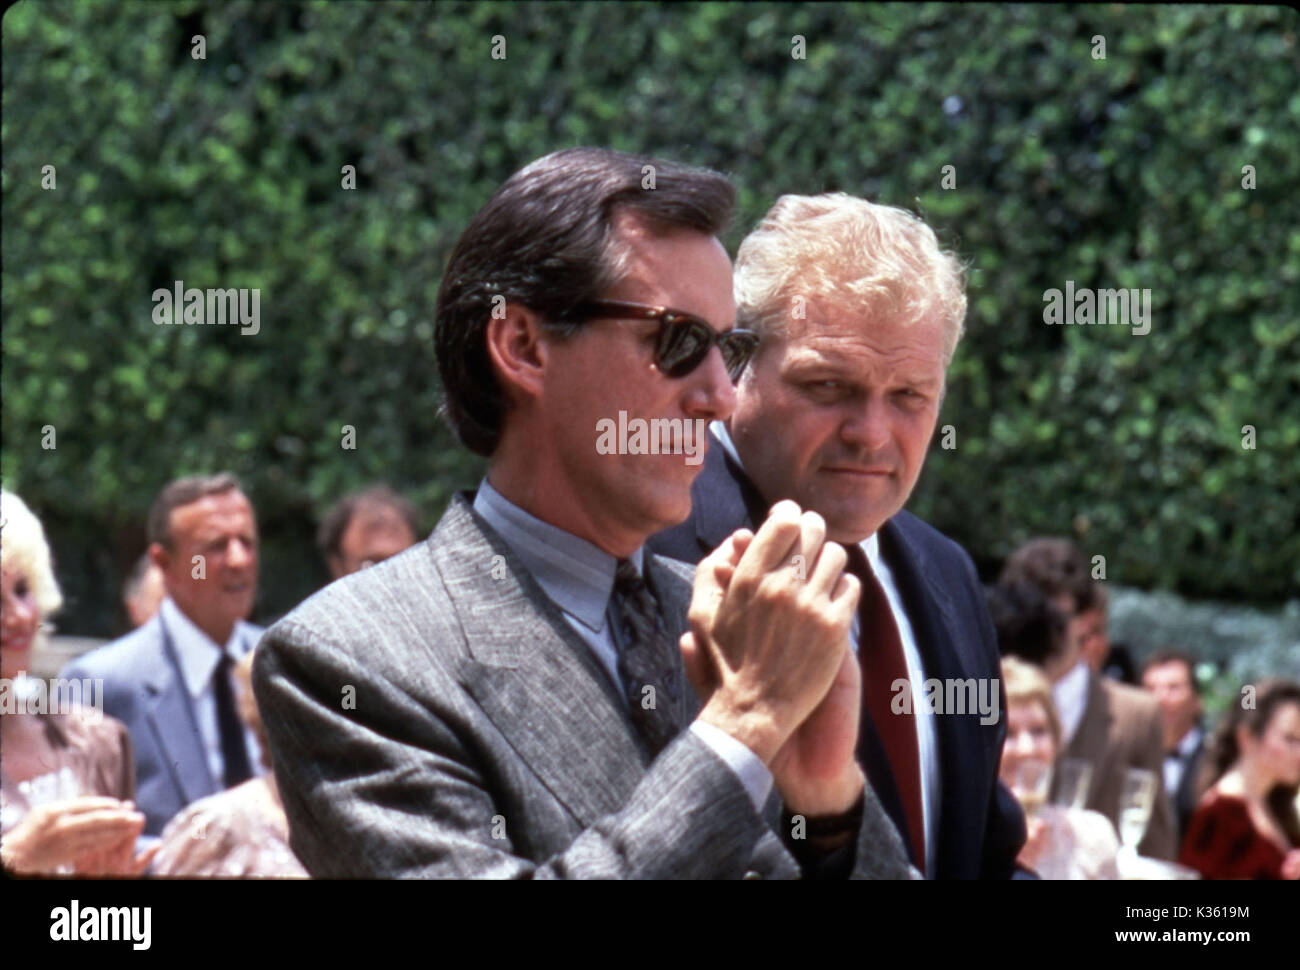 BEST SELLER James Woods, Brian Dennehy Fecha: 1987 Foto de stock